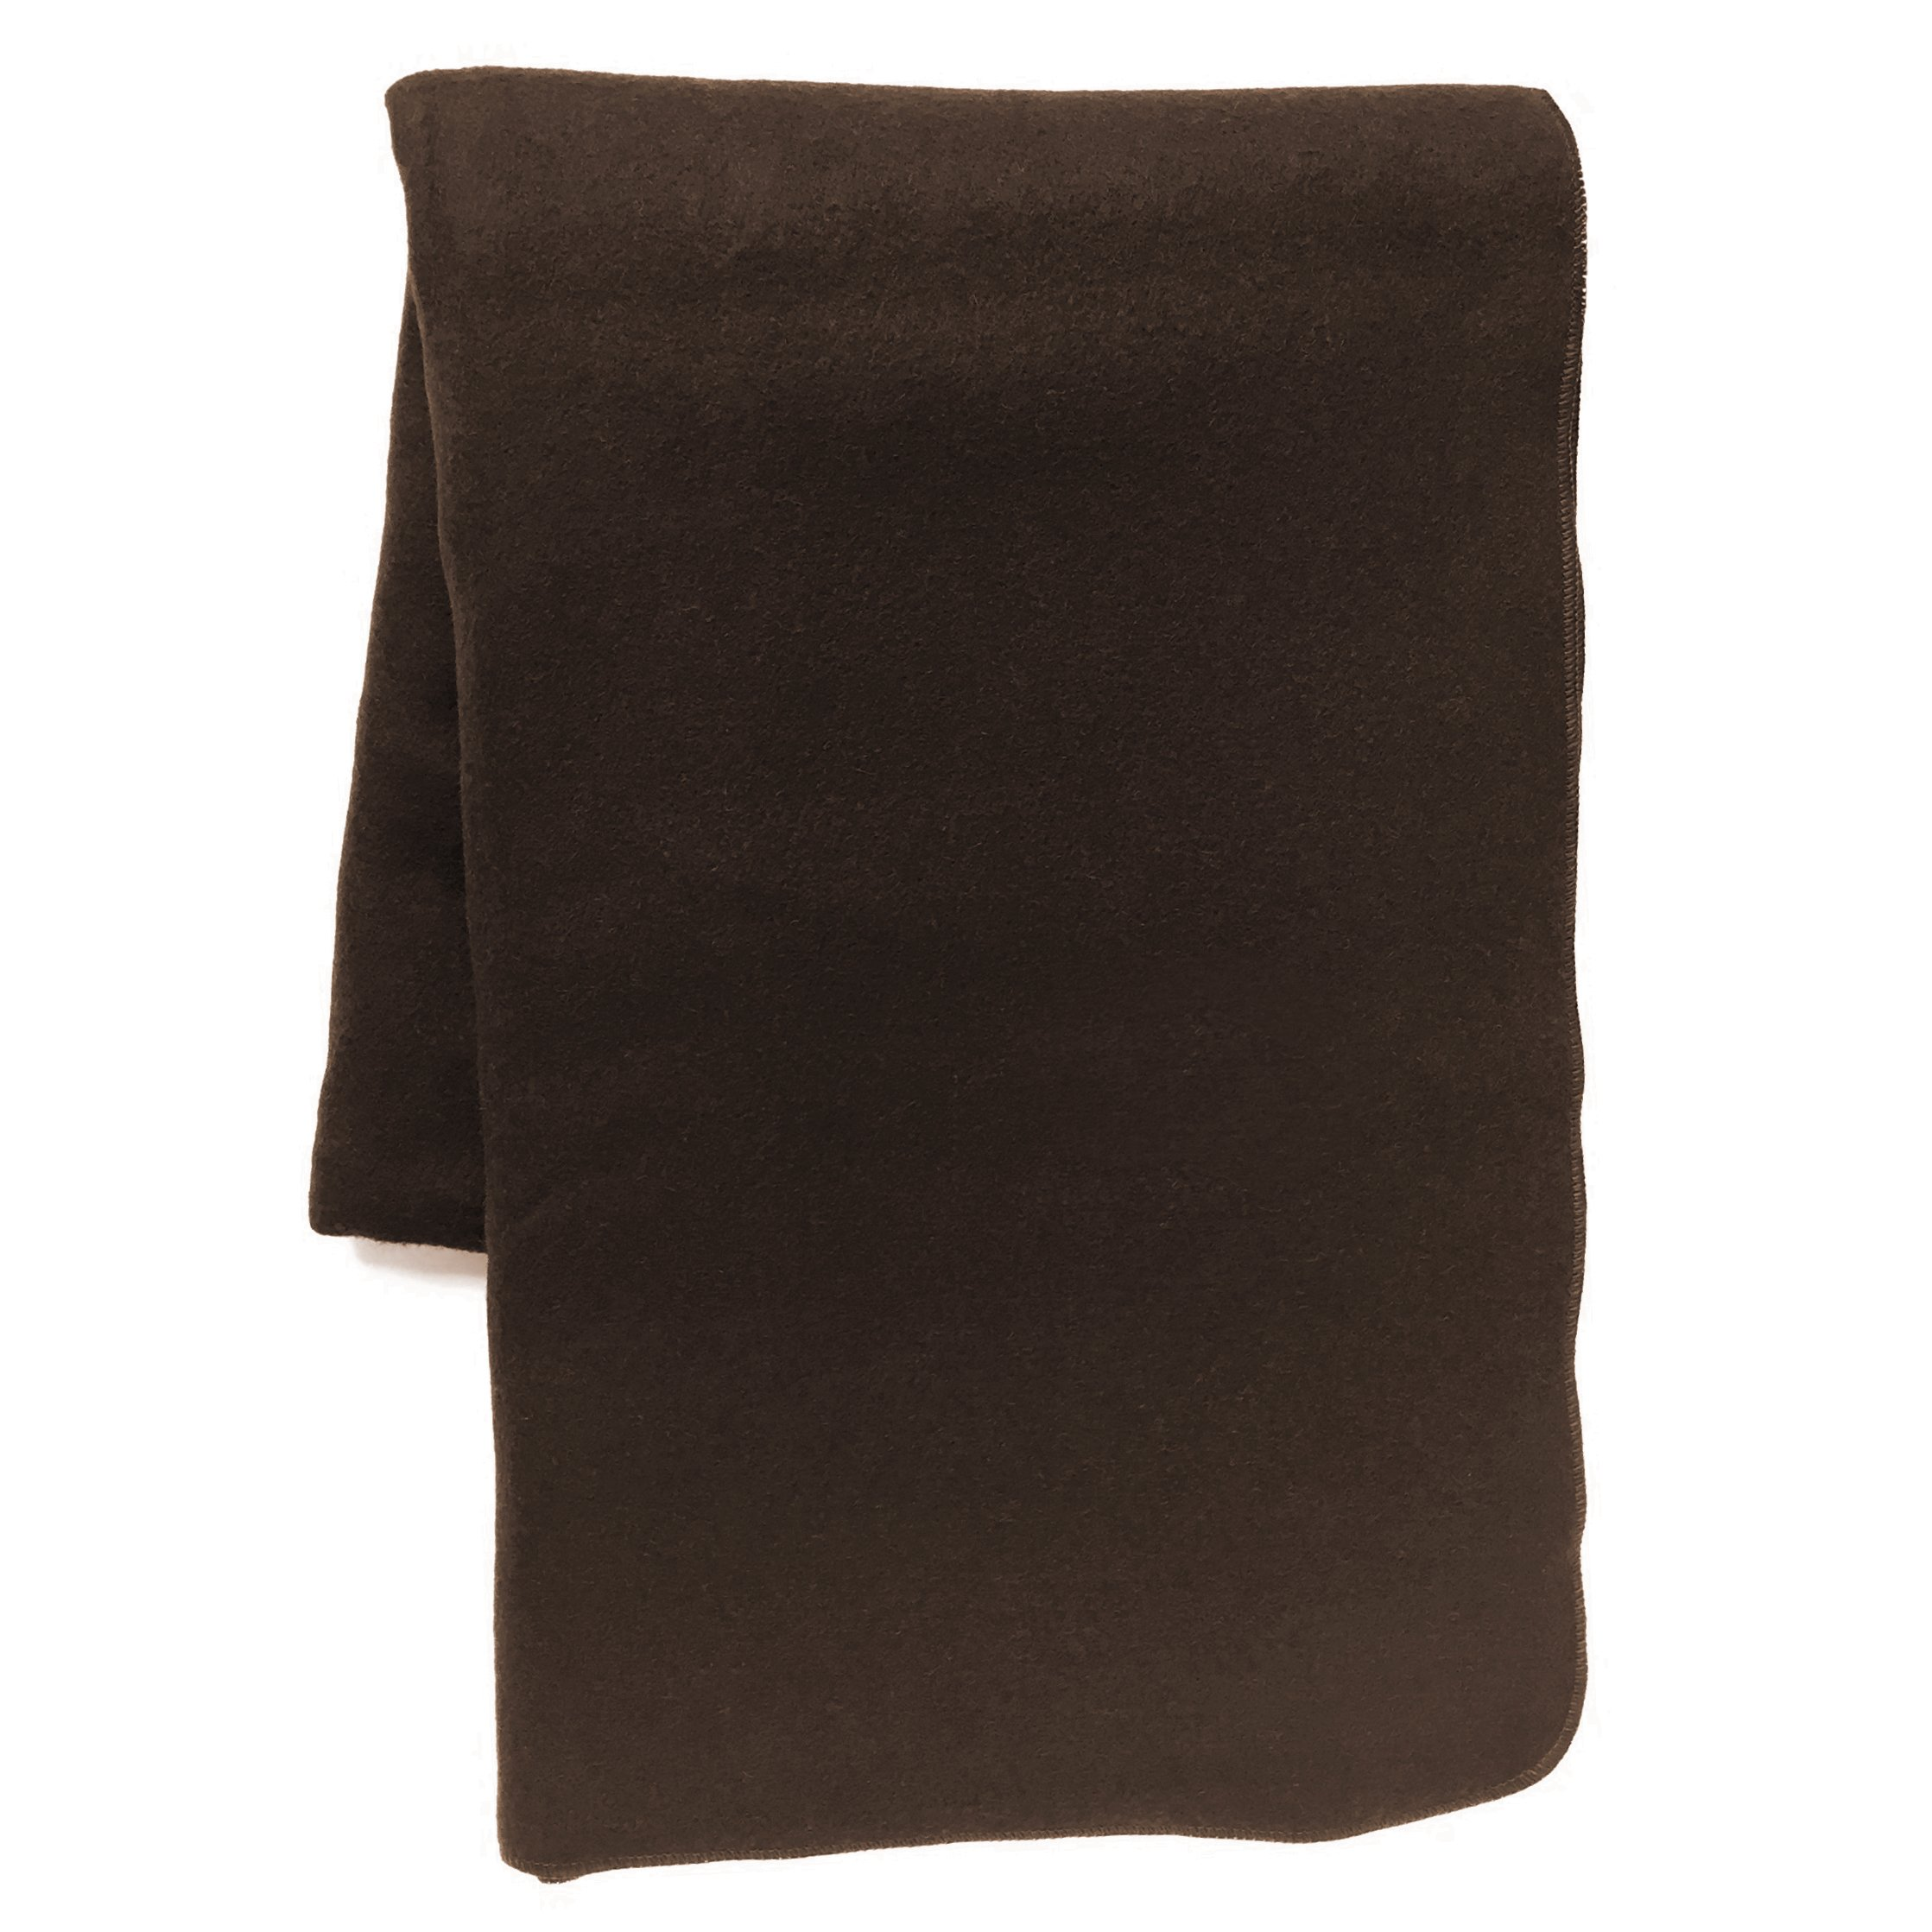 EKTOS 80% Wool Blanket, Brown, Light & Warm 3.7 lbs, Large Washable 66''x90'' Size, Perfect for Outdoor Camping, Survival & Emergency Preparedness Use by EKTOS (Image #6)